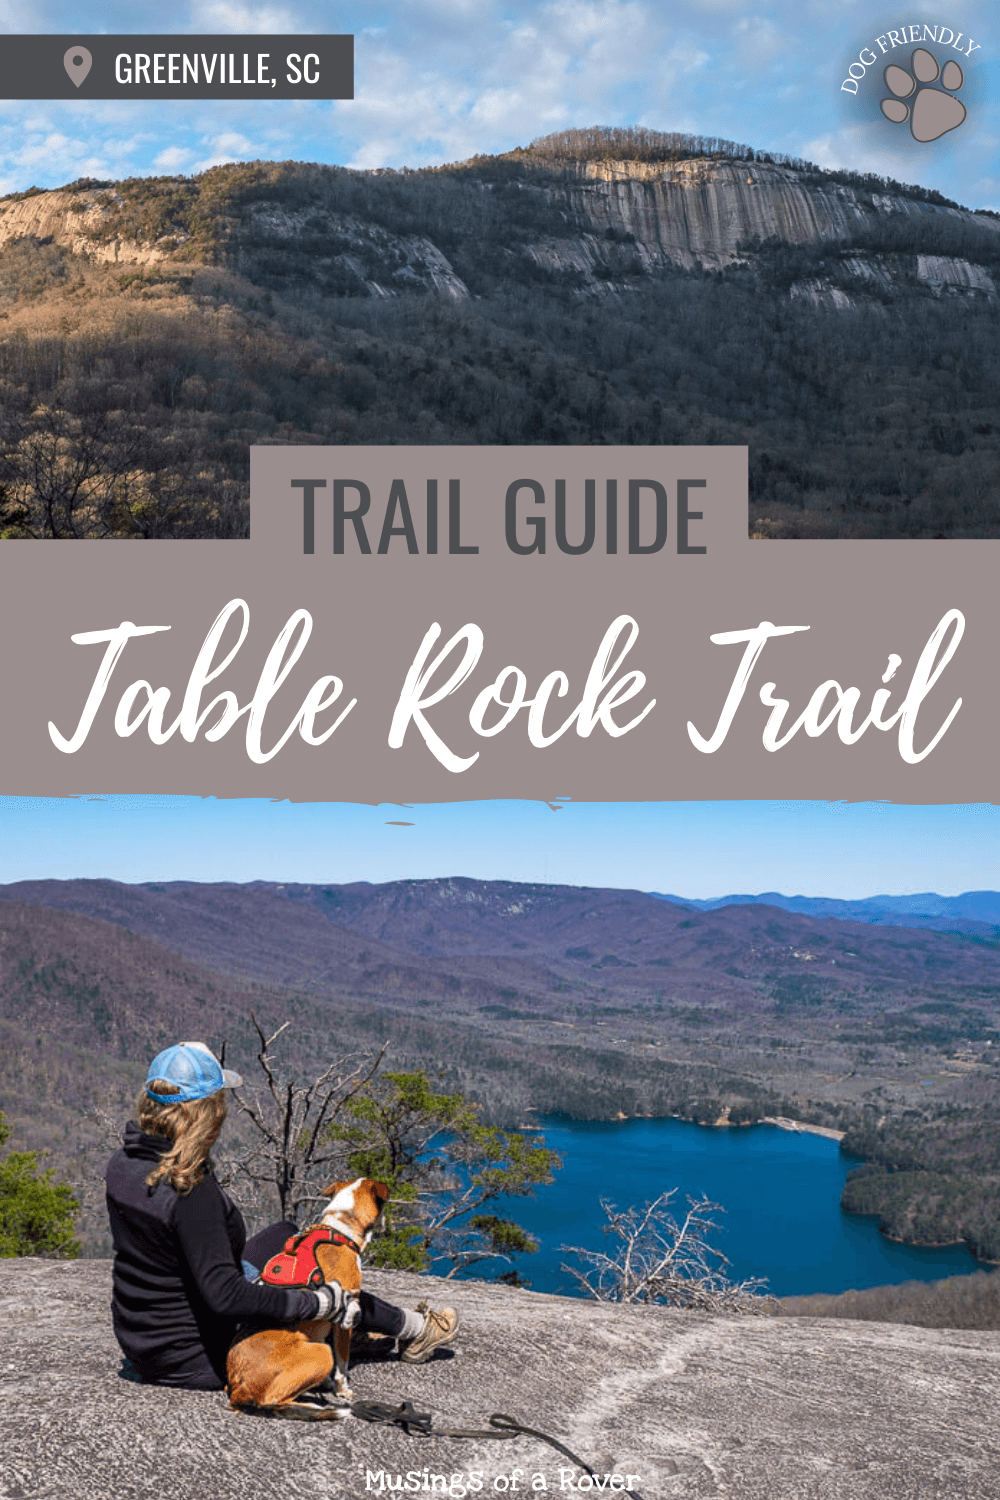 Looking for an amazing, iconic, and tough hike near Greenville, SC? Head on over to Table Rock State Park to hike the Table Rock Trail. This challenging trail will take you up to amazing viewpoint. There are several overlooks along the way. And it's dog friendly!